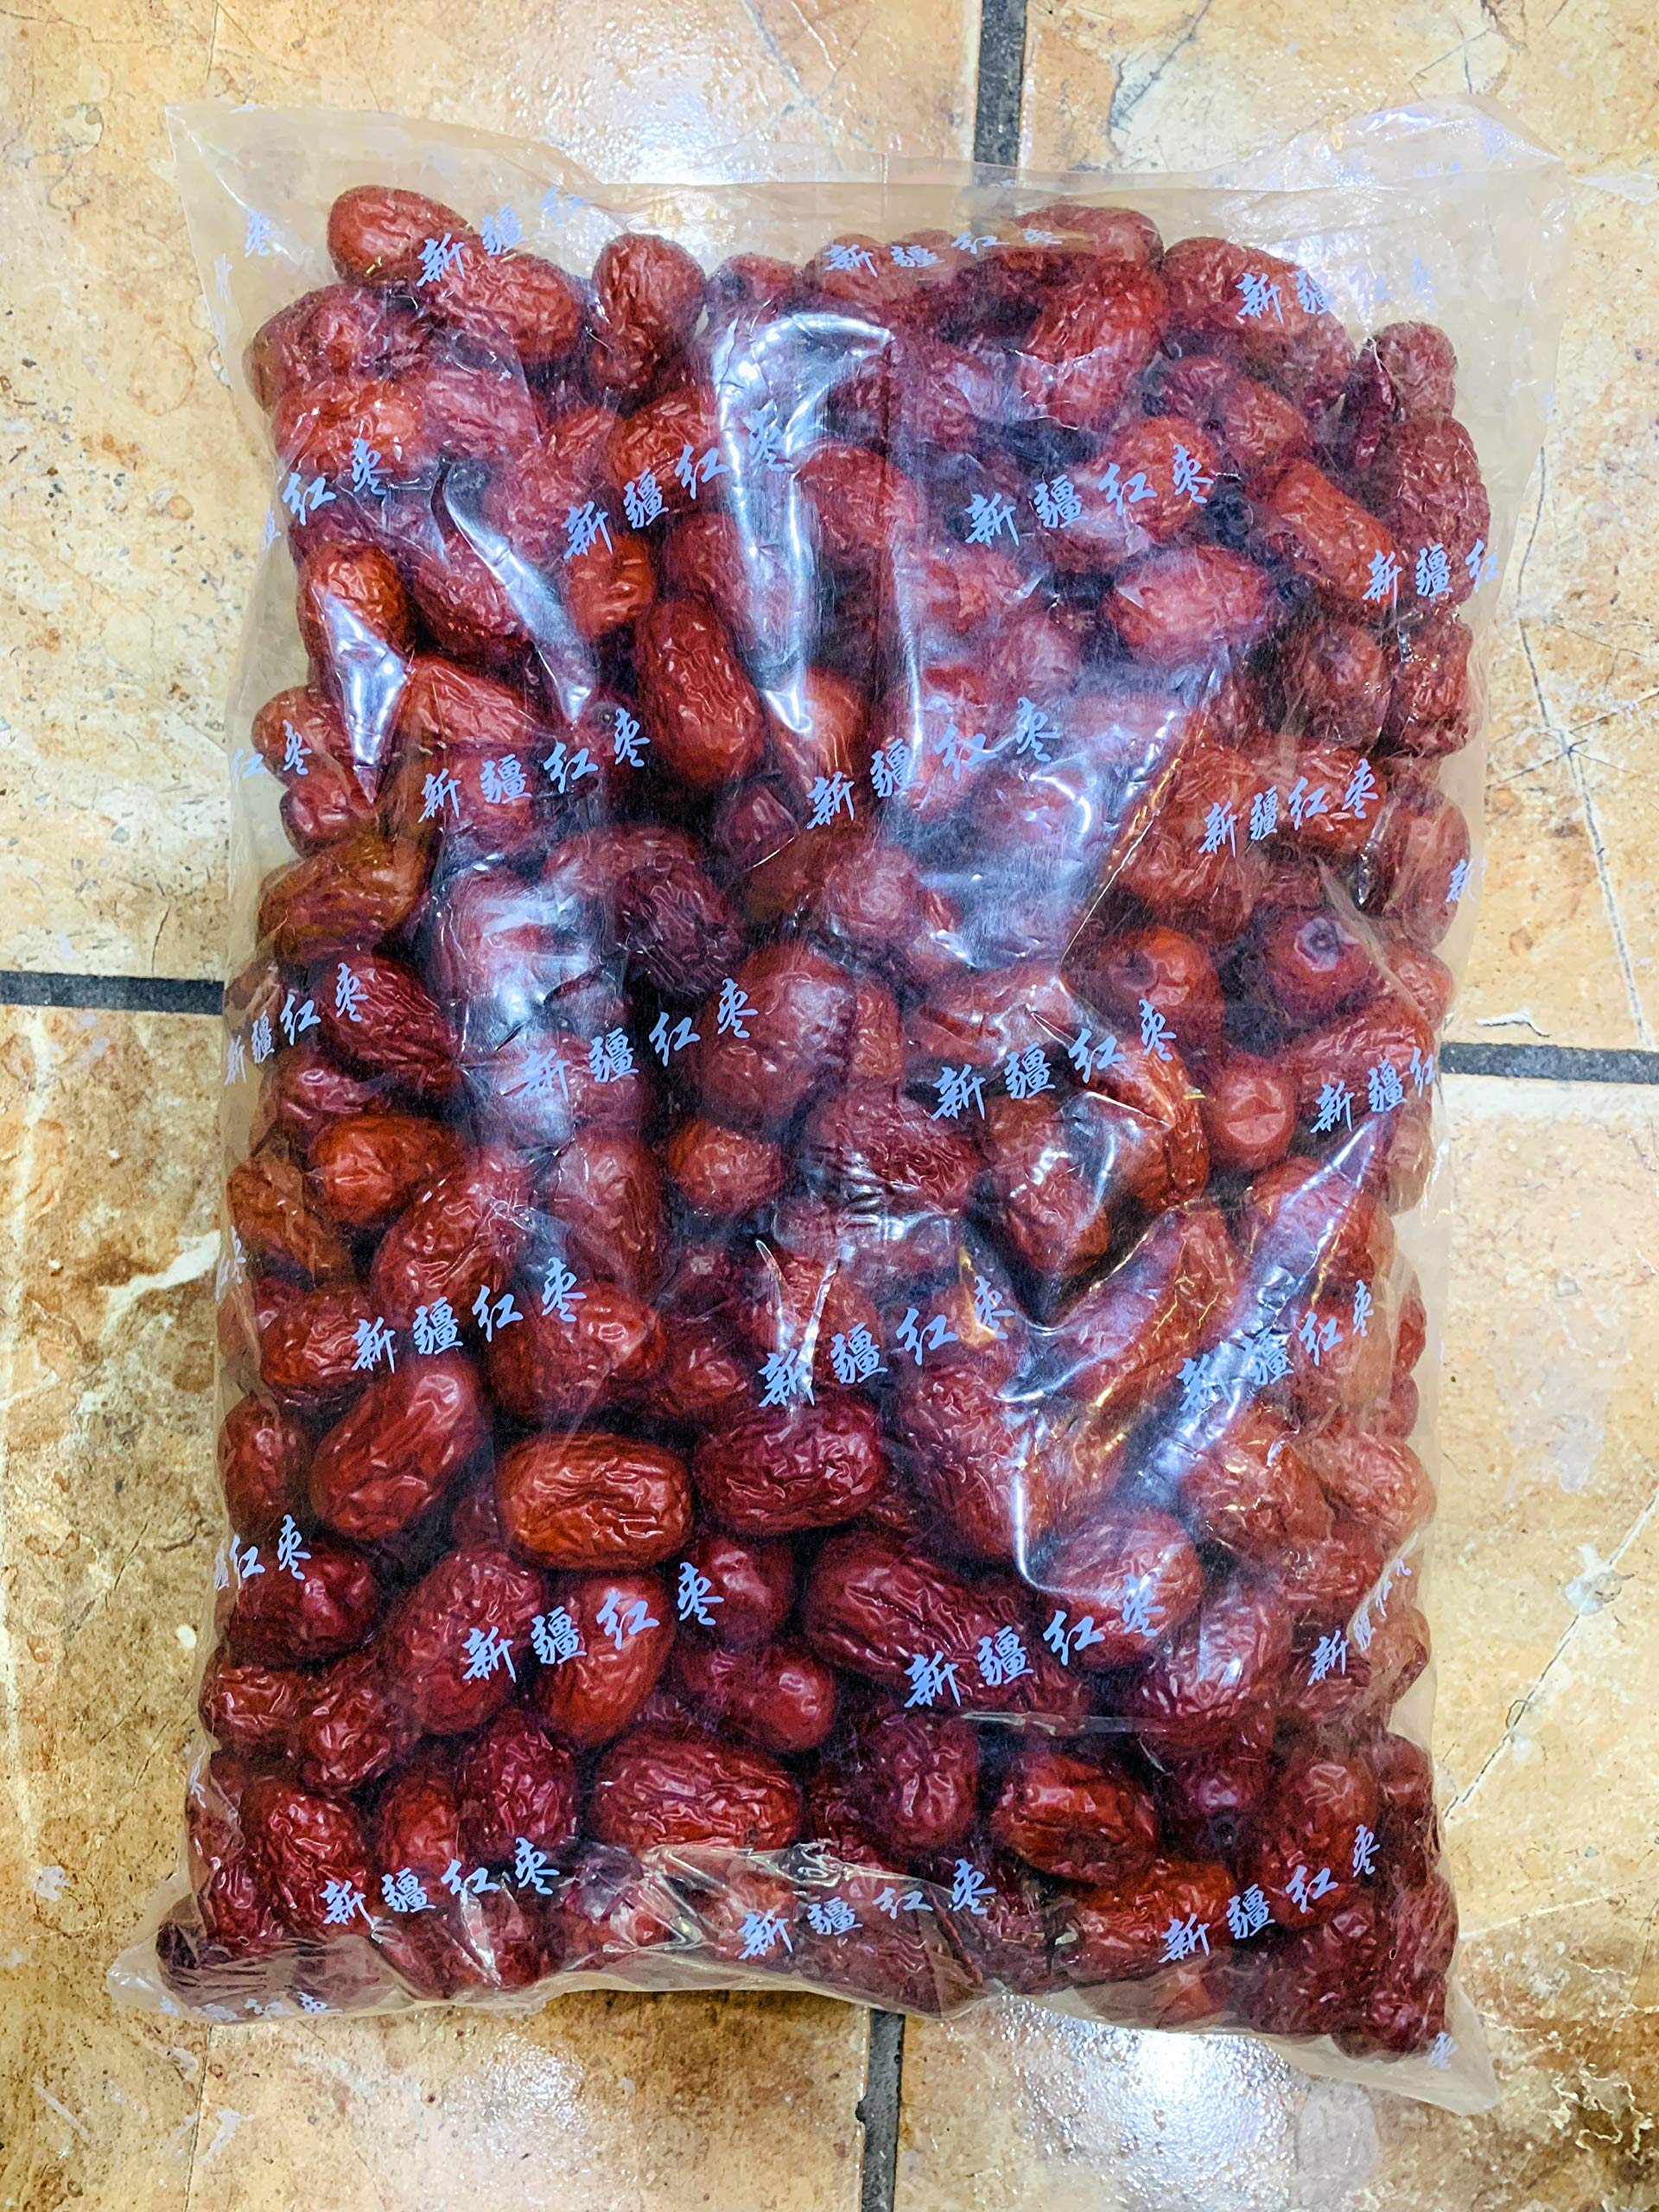 Red Jujube / Red Chinese Dates 新疆红棗 (5.5 LB (1 Bag))